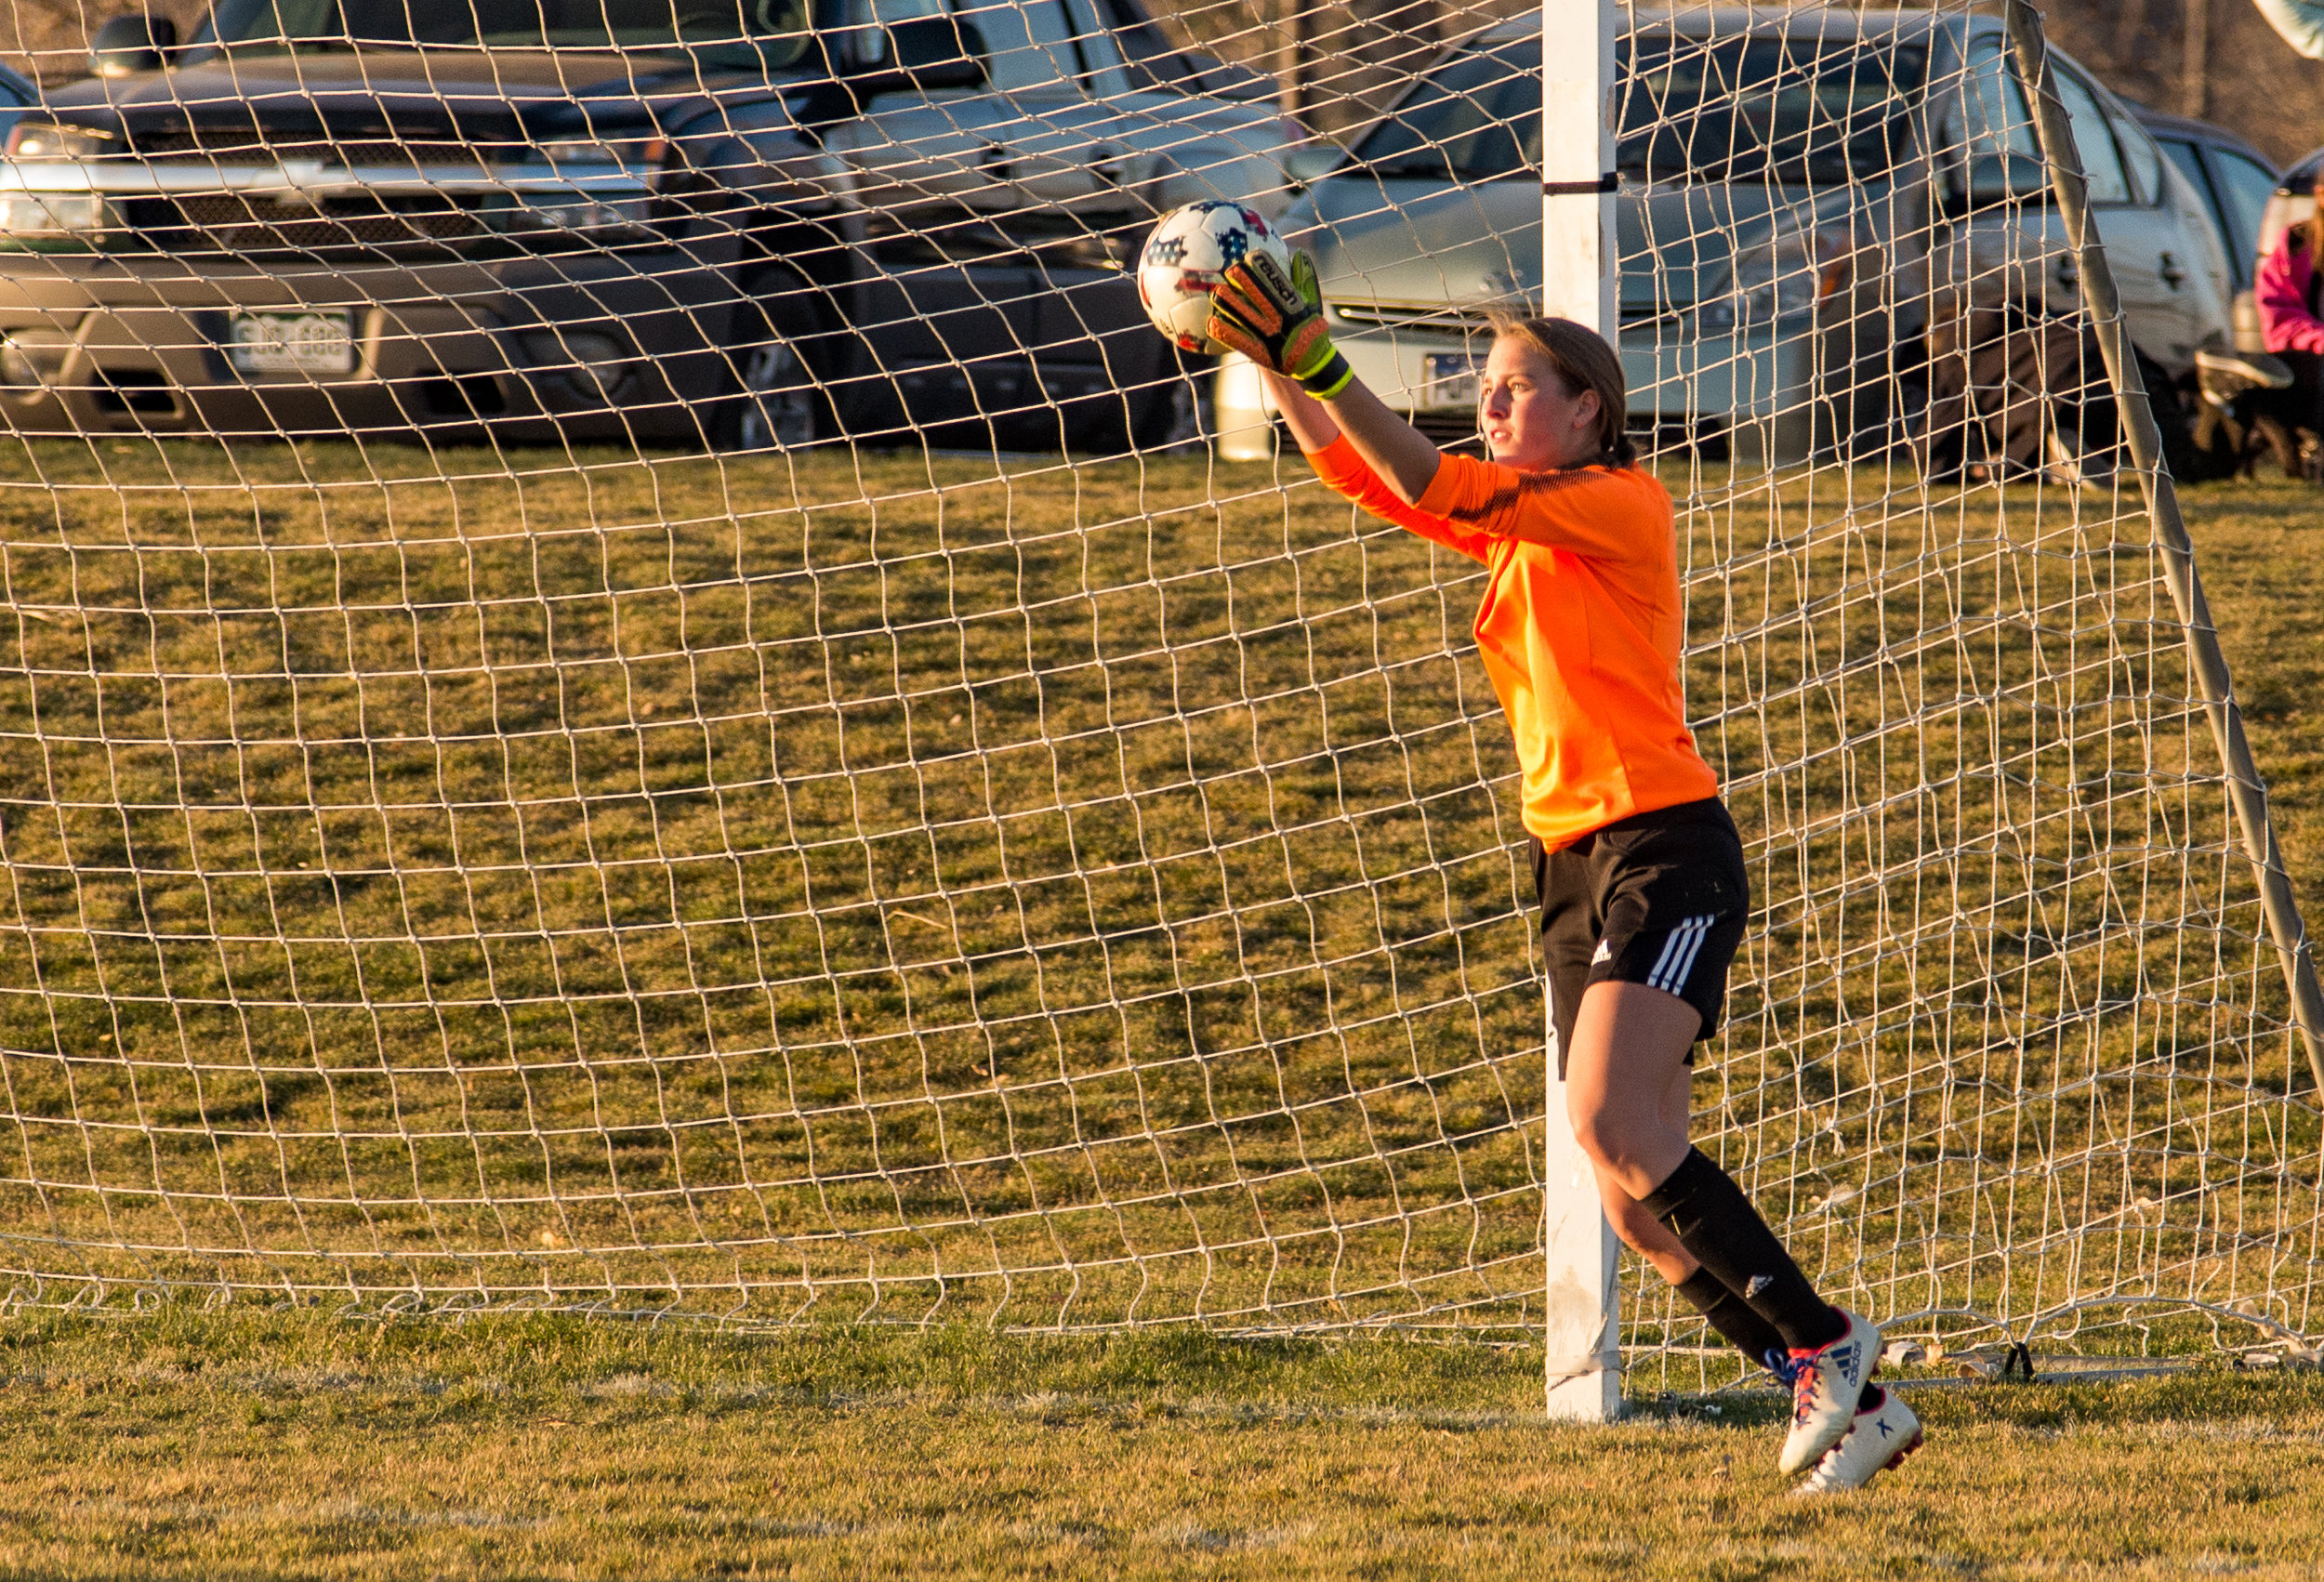 20171103-United SC vs Chaffee County-PMG_9388.jpg